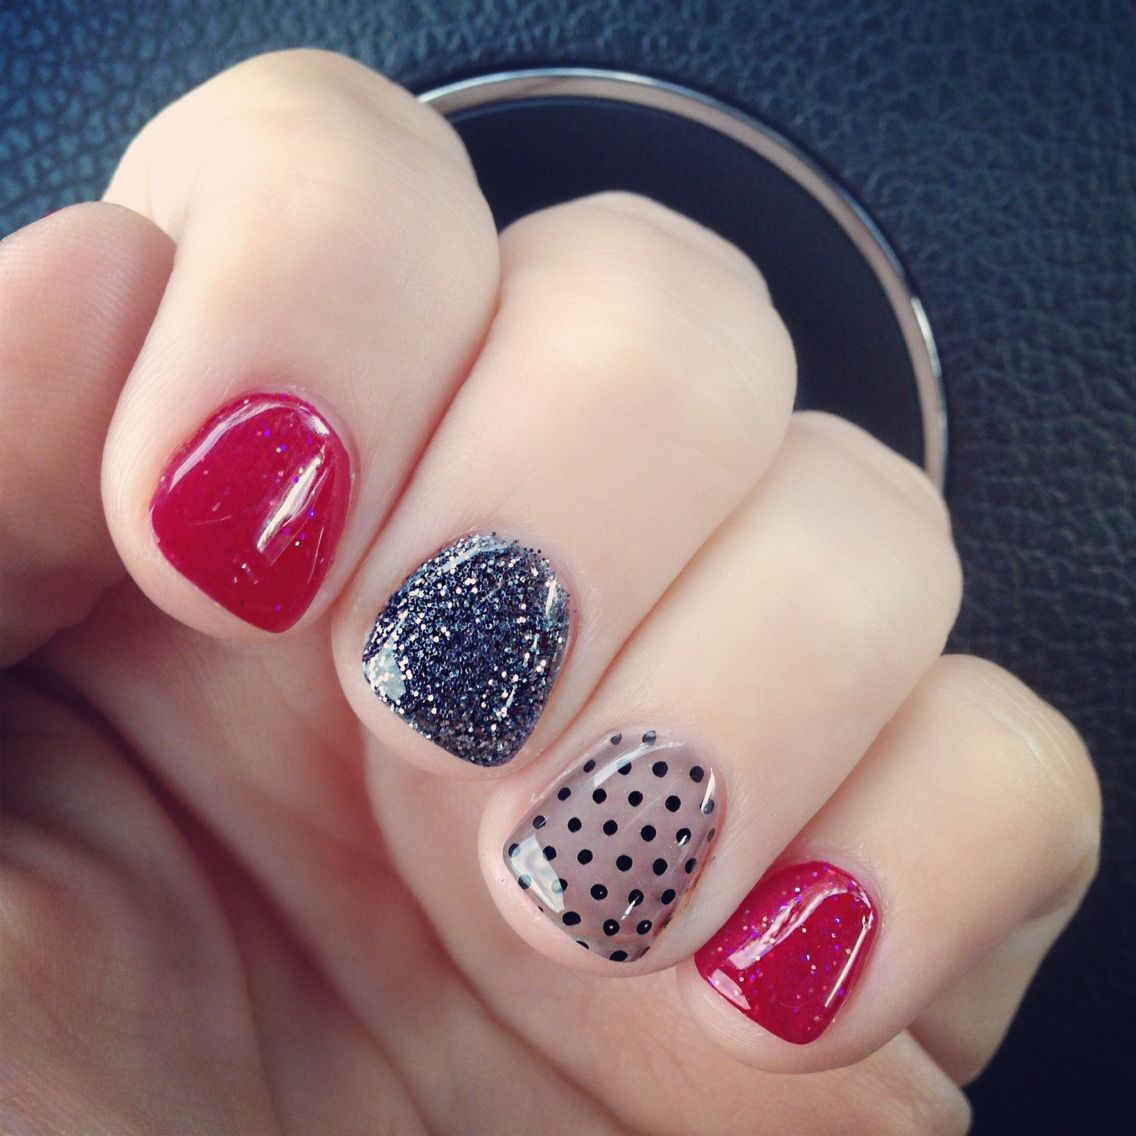 red, glitter, transparent black polka dots #nailart | nails